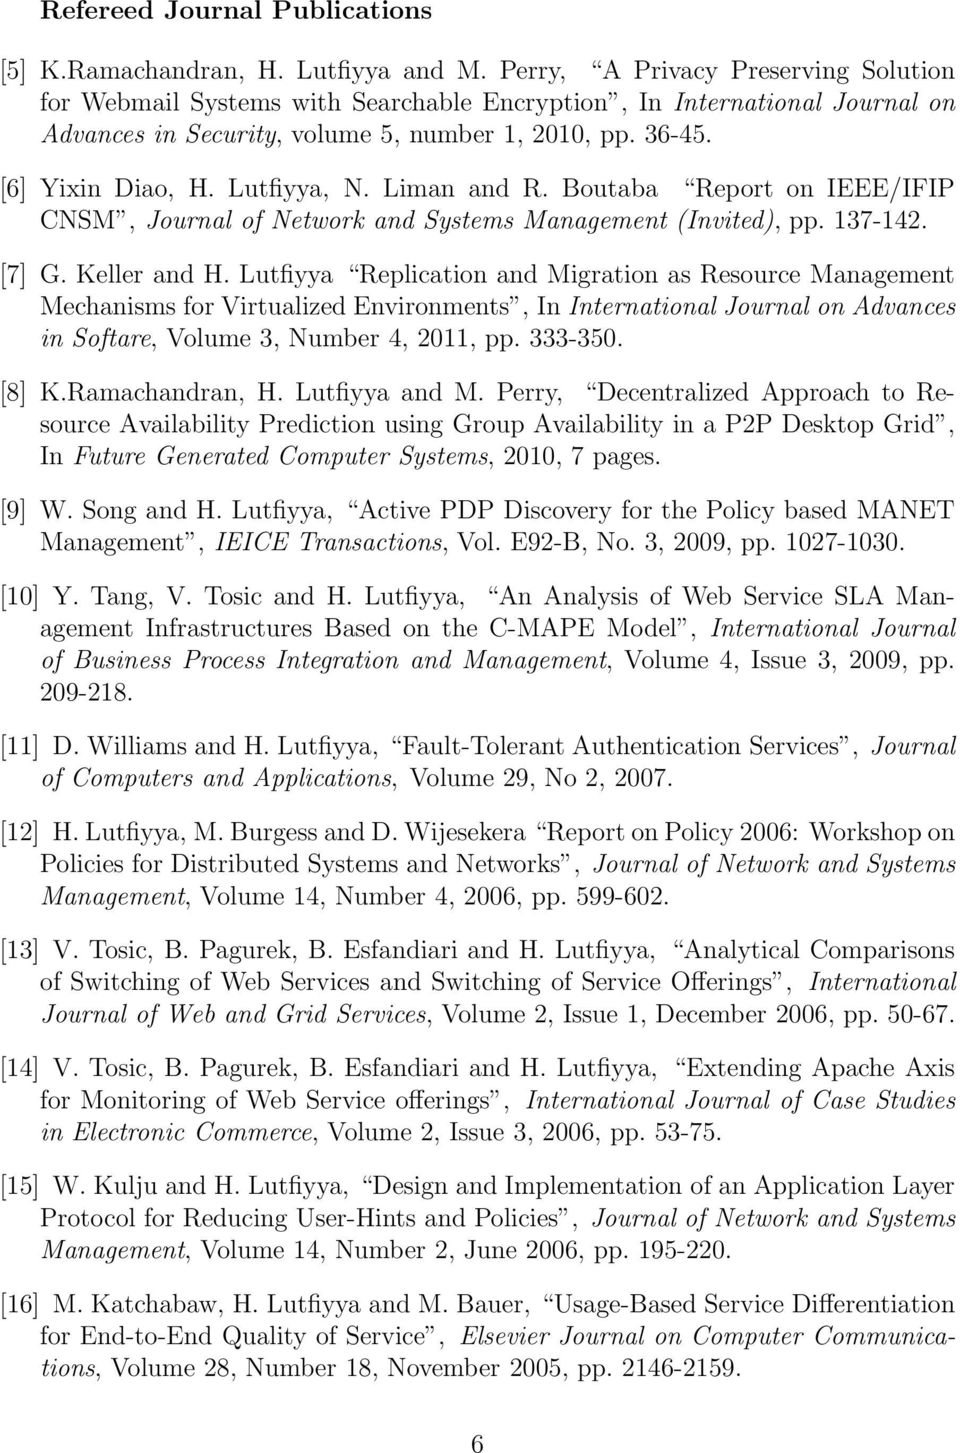 Lutfiyya, N. Liman and R. Boutaba Report on IEEE/IFIP CNSM, Journal of Network and Systems Management (Invited), pp. 137-142. [7] G. Keller and H.